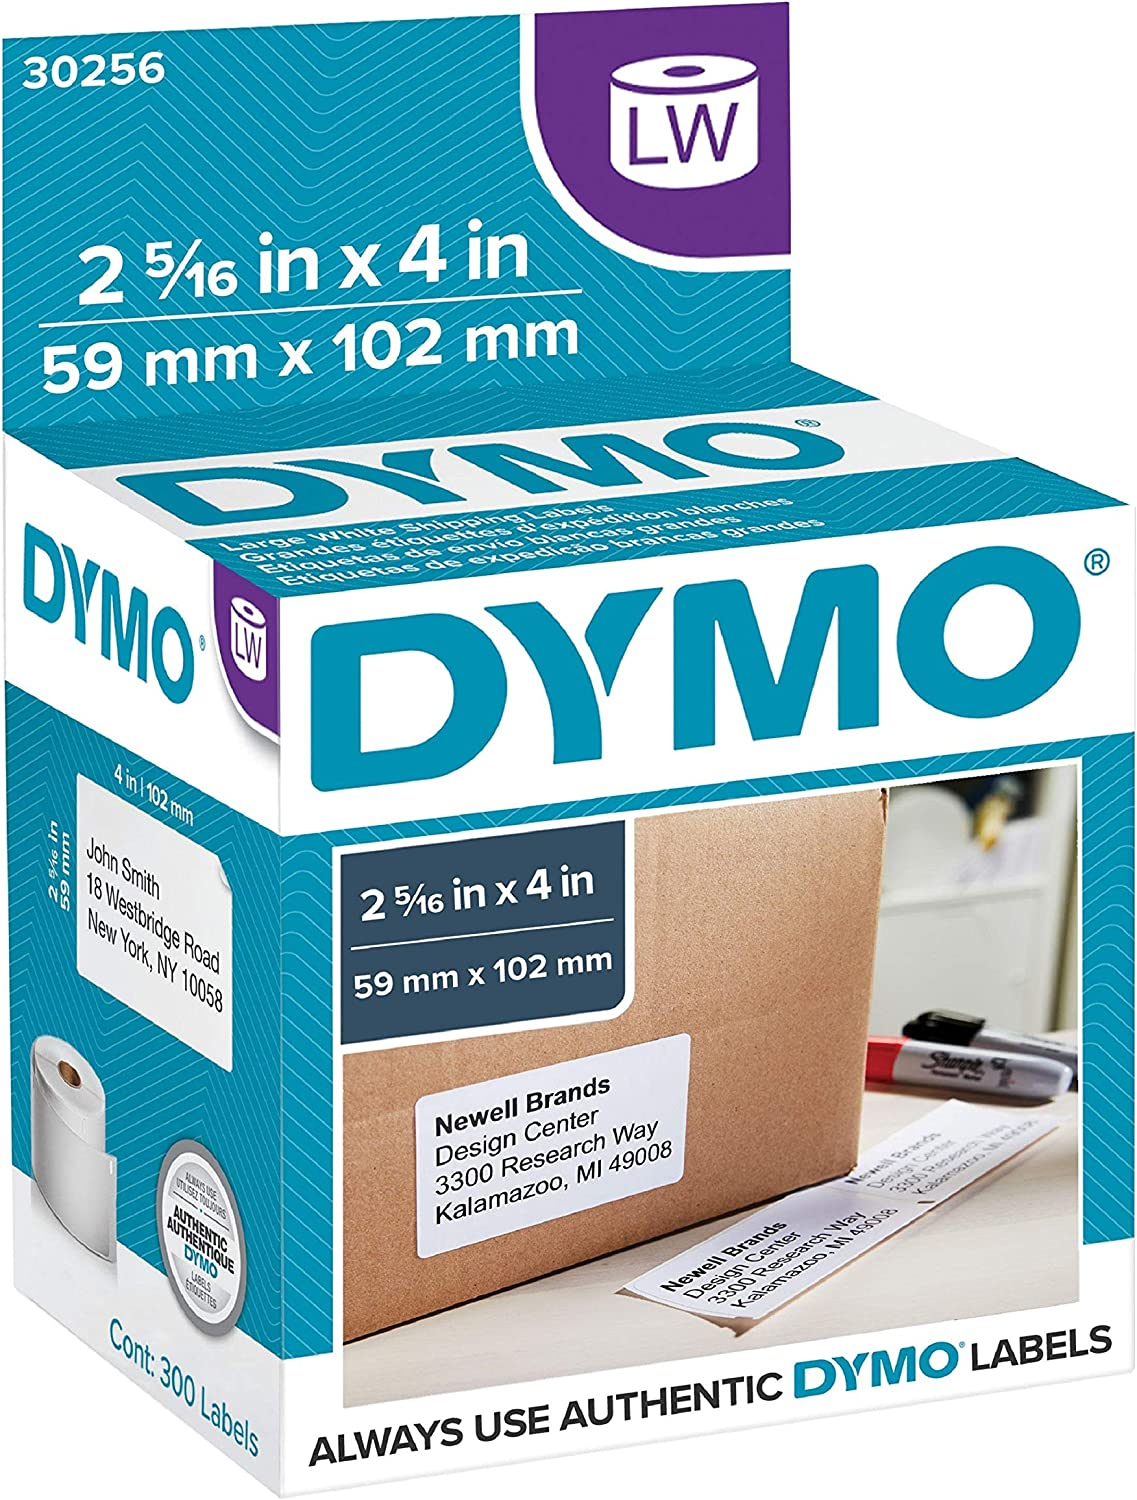 "DYMO Authentic LW Large Shipping Labels | DYMO Labels for LabelWriter Label Printers, (2-5/16"" x 4), Print Up to 6-Line Addresses, 1 Roll of 300 : Office Products"